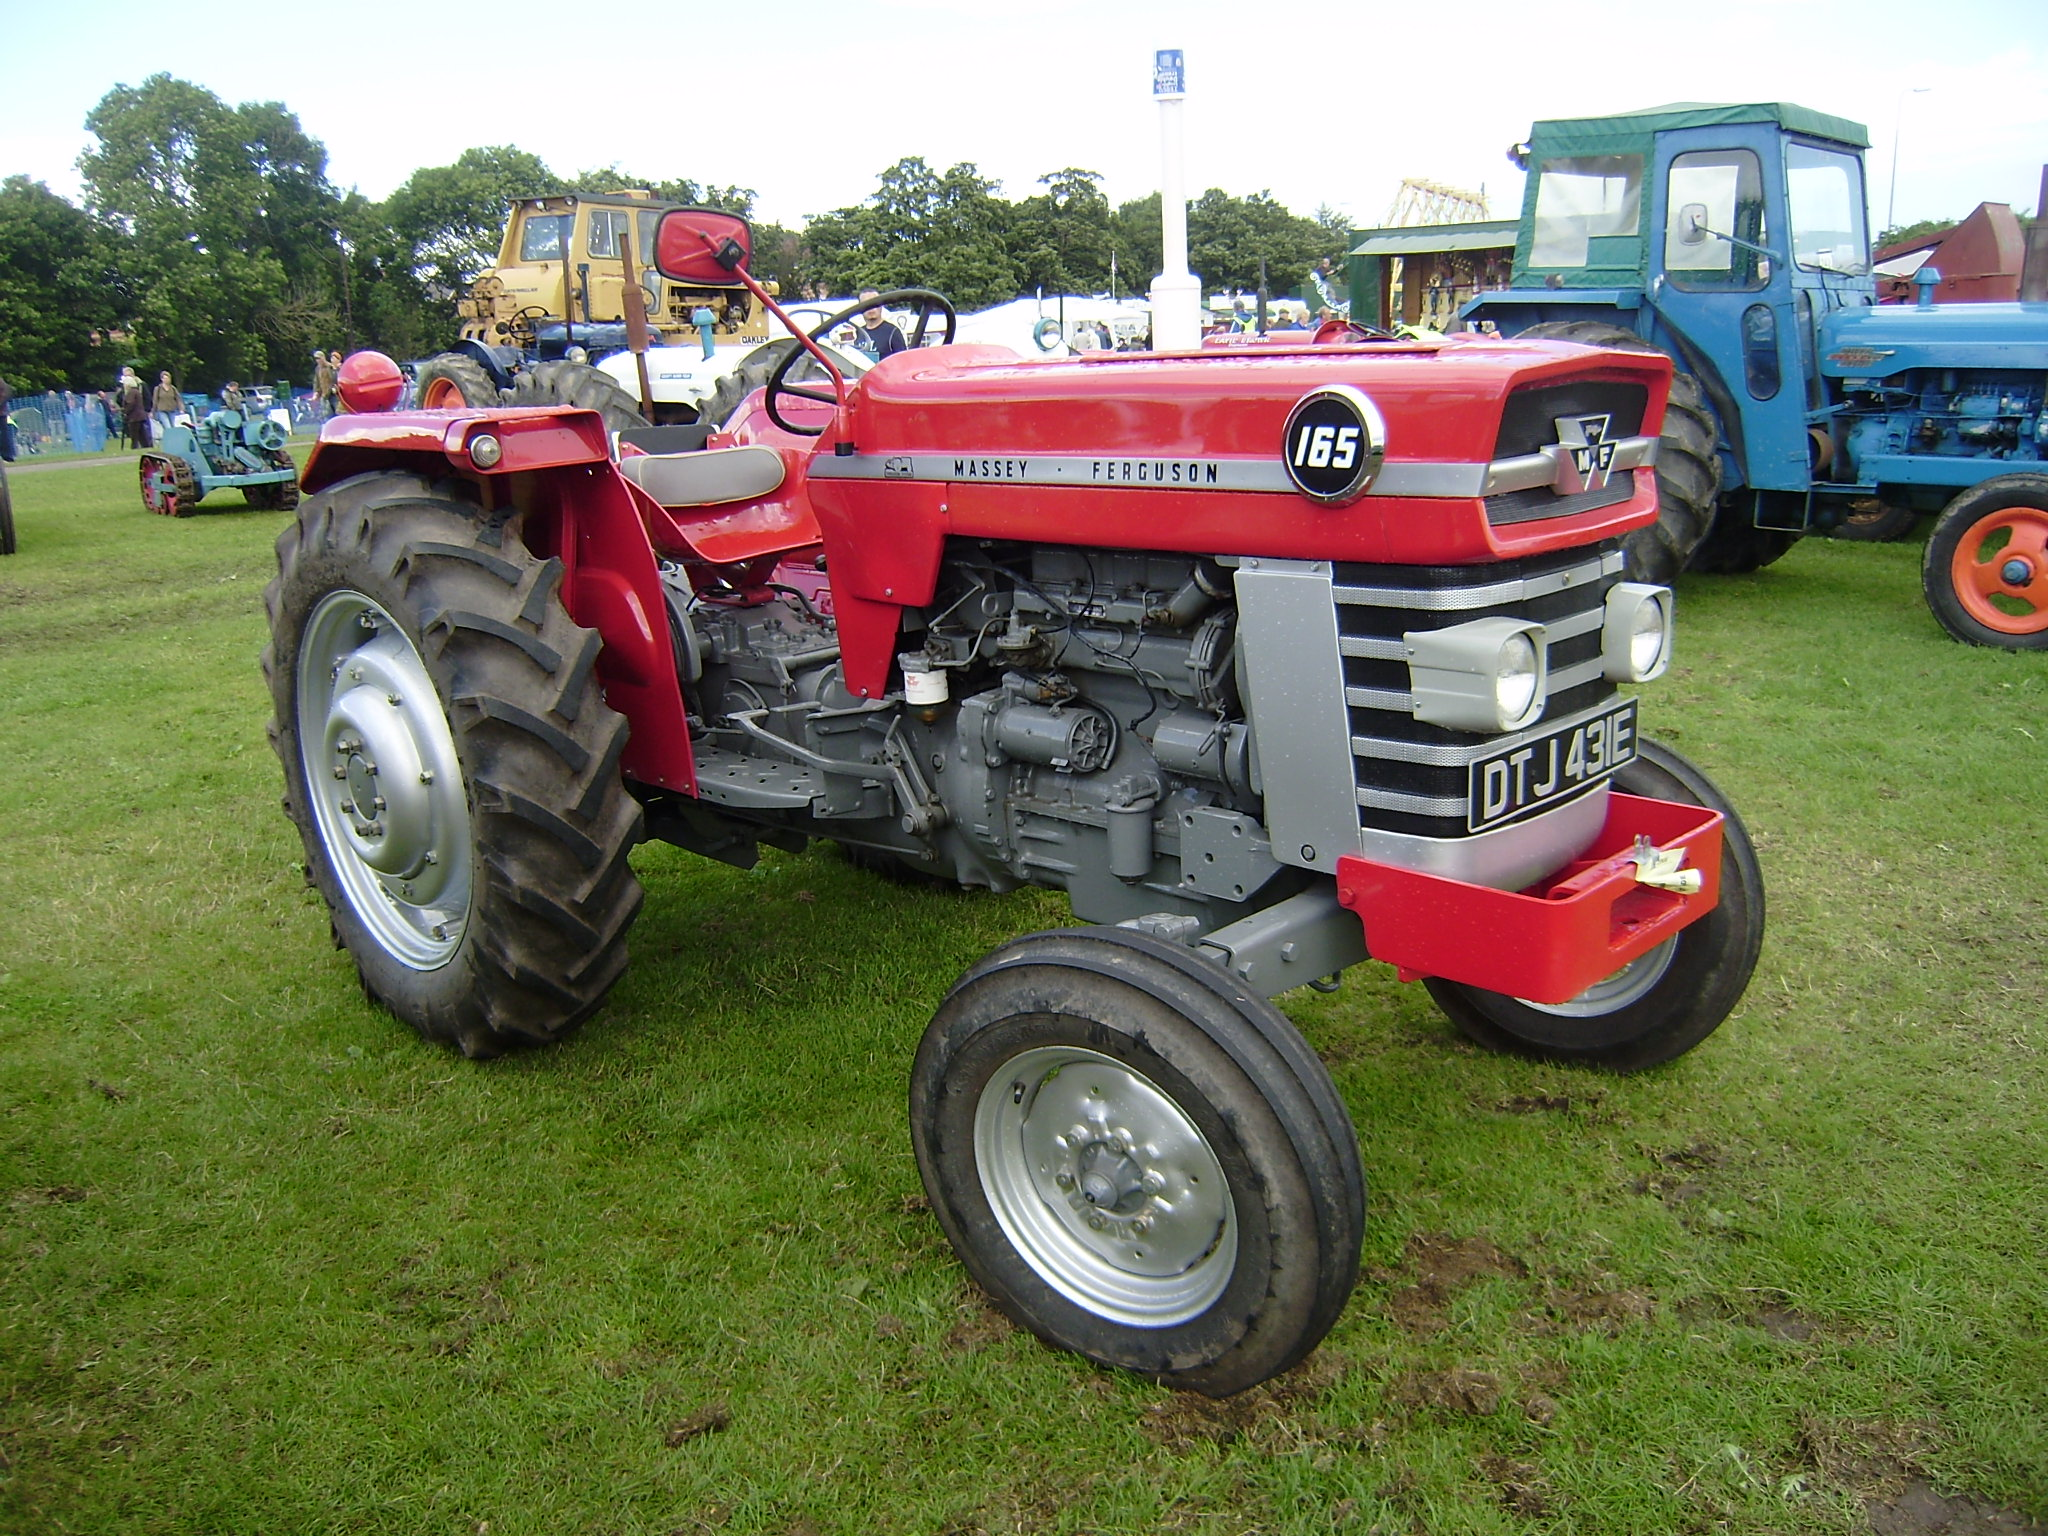 Tractor Manuals & Publications Enthusiastic Mf 265 Tractor Duncan Cab Agriculture/farming